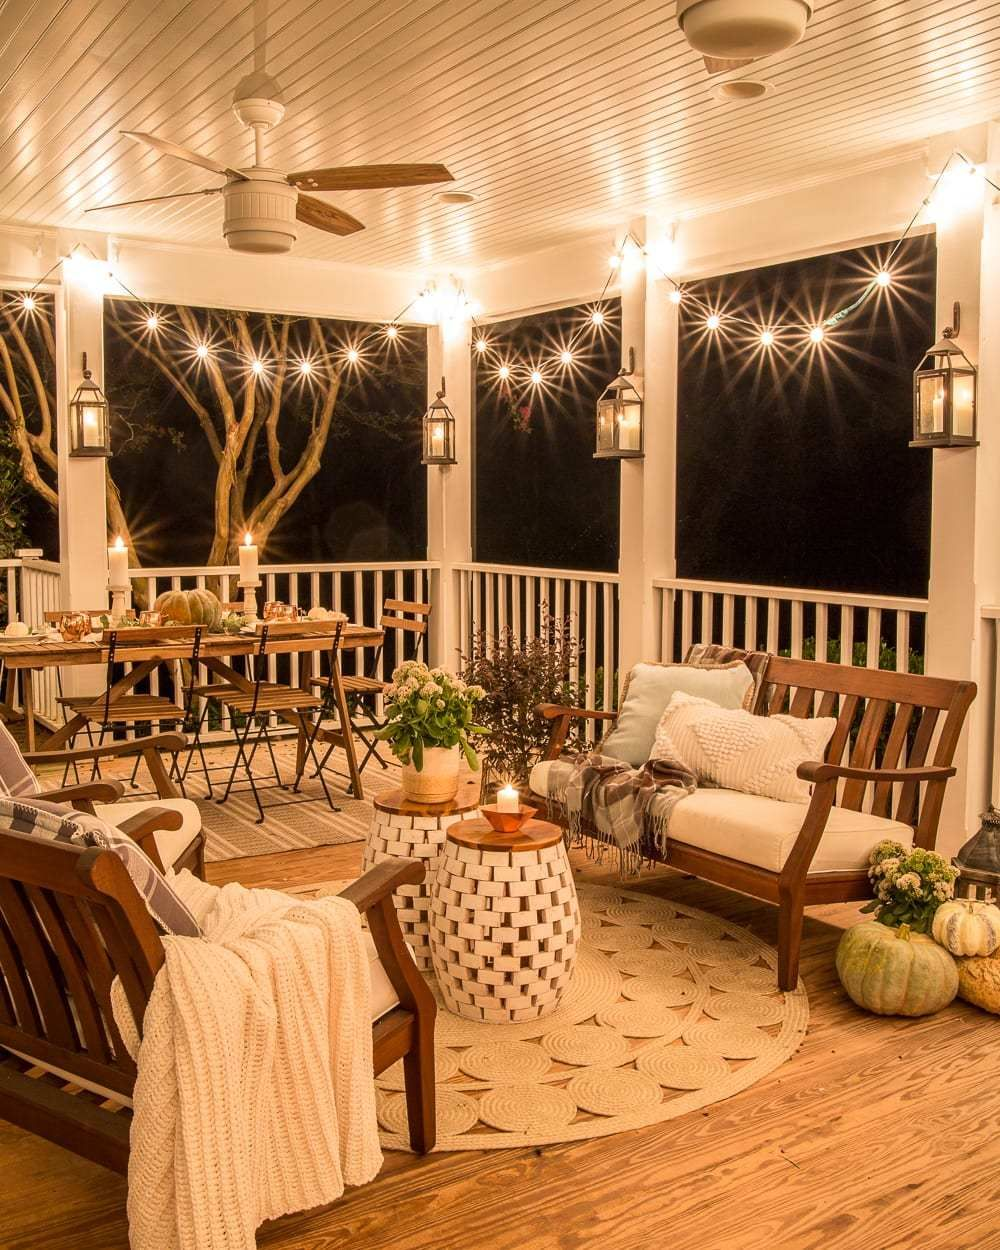 Photo of Fall Back Porch & Choosing the Best Capsule Decor